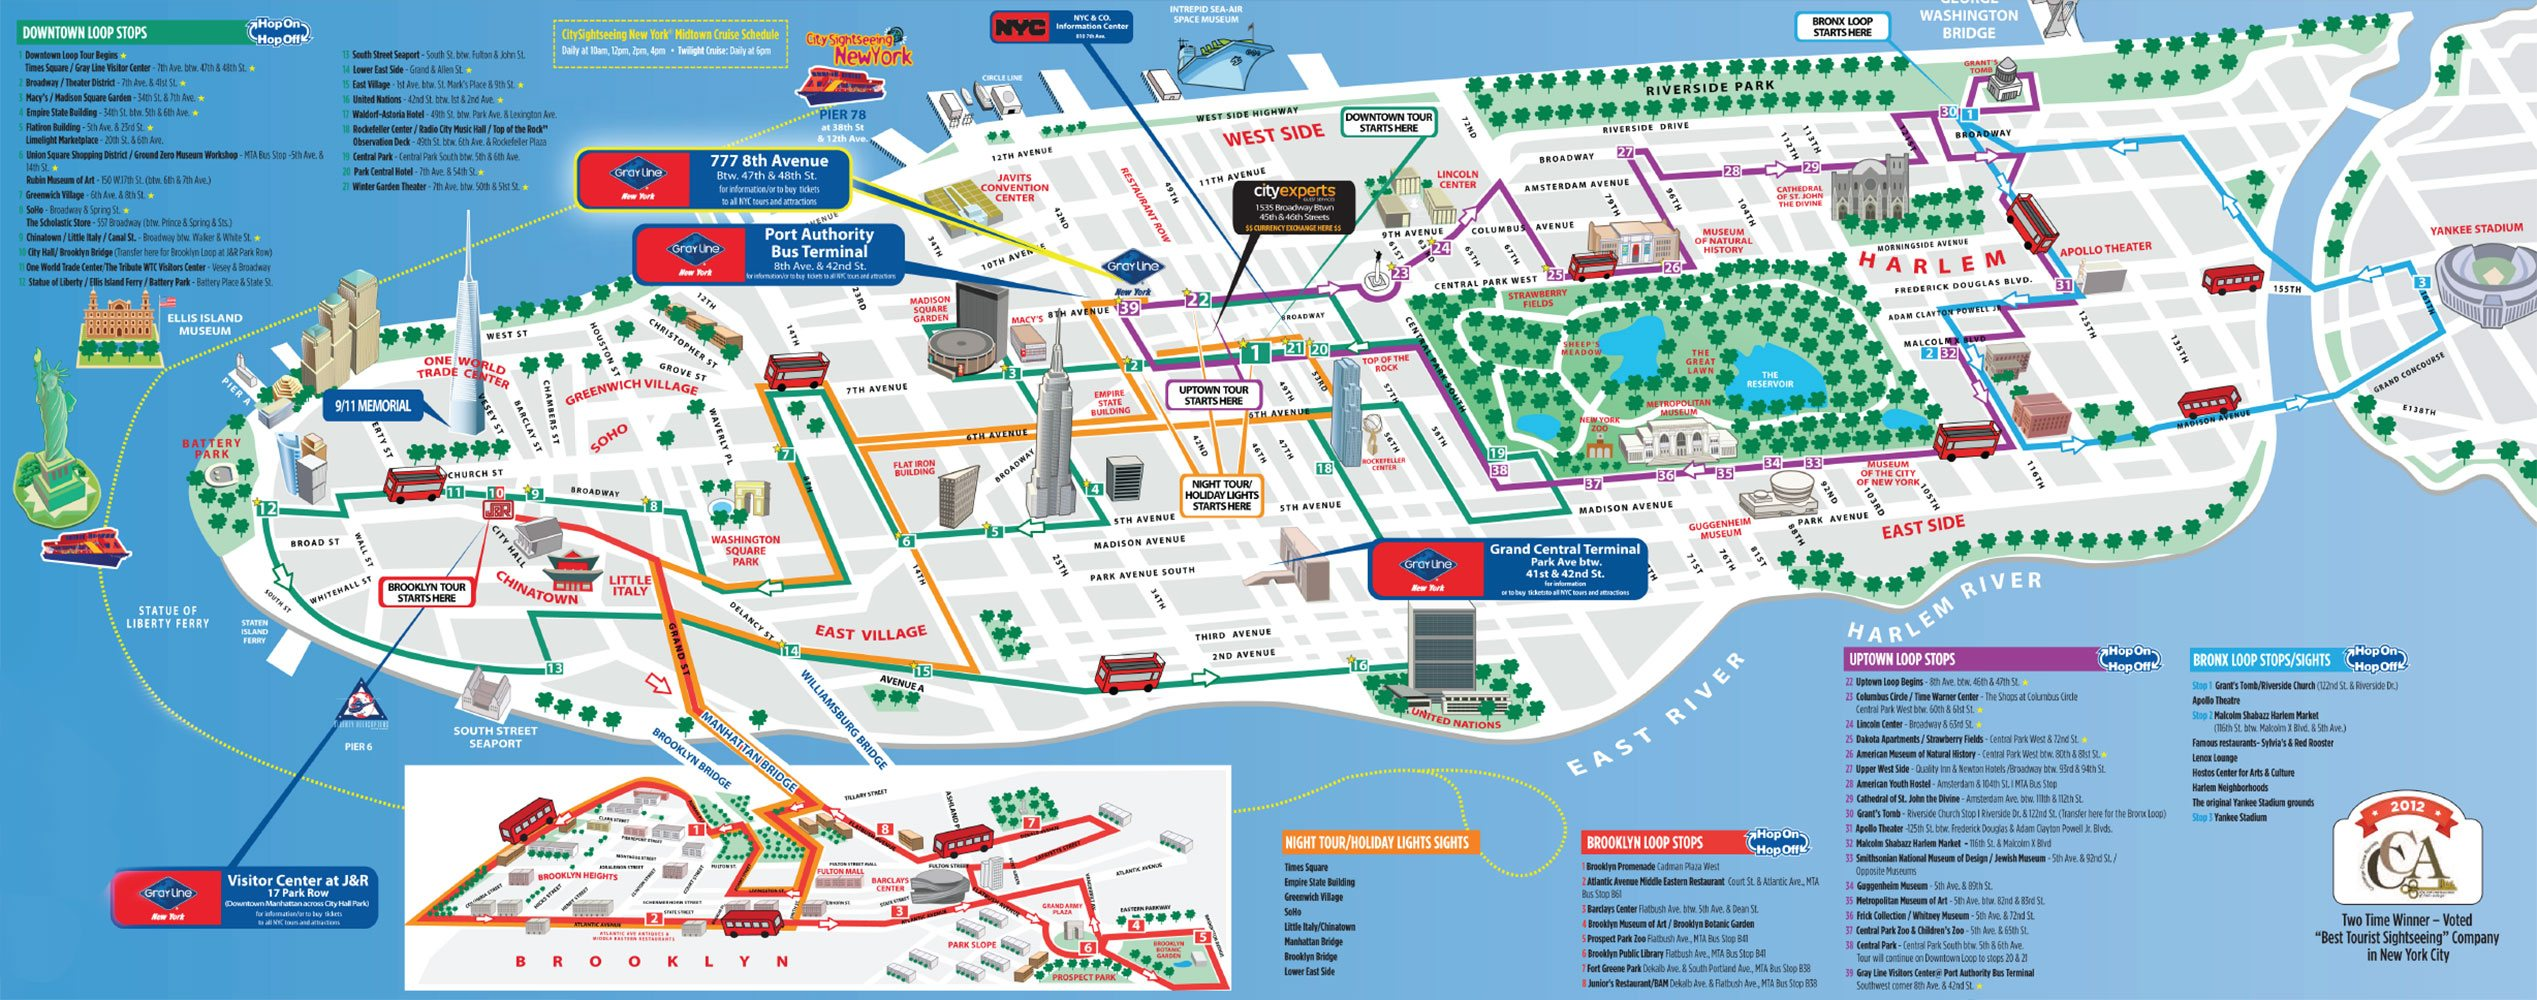 nyc attraction map Gallery – Nyc Tourist Attractions Map